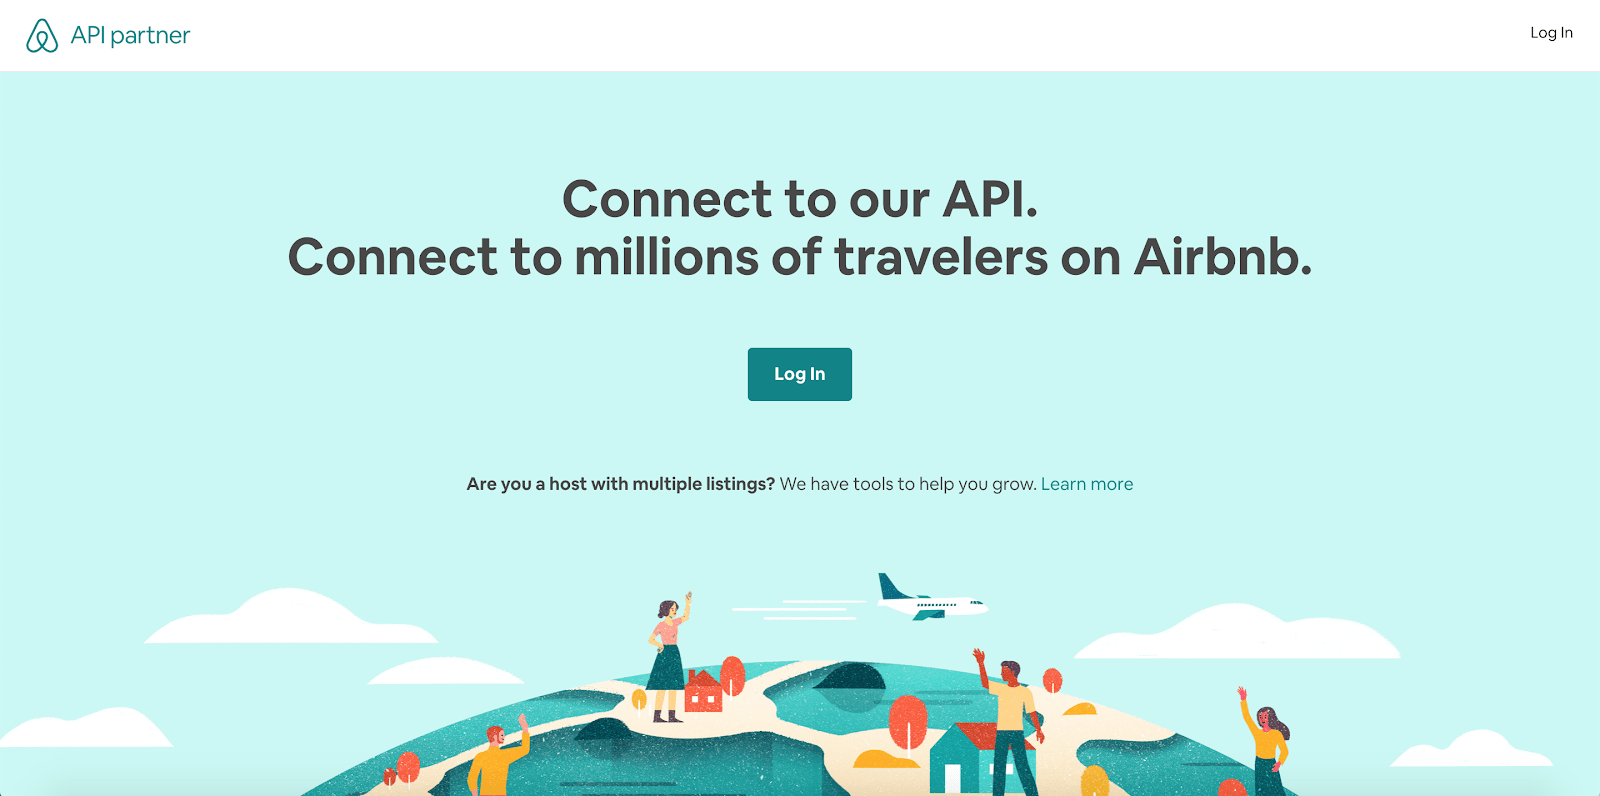 Top 10 Best Hotel APIs: Airbnb, TripAdvisor, Expedia and more